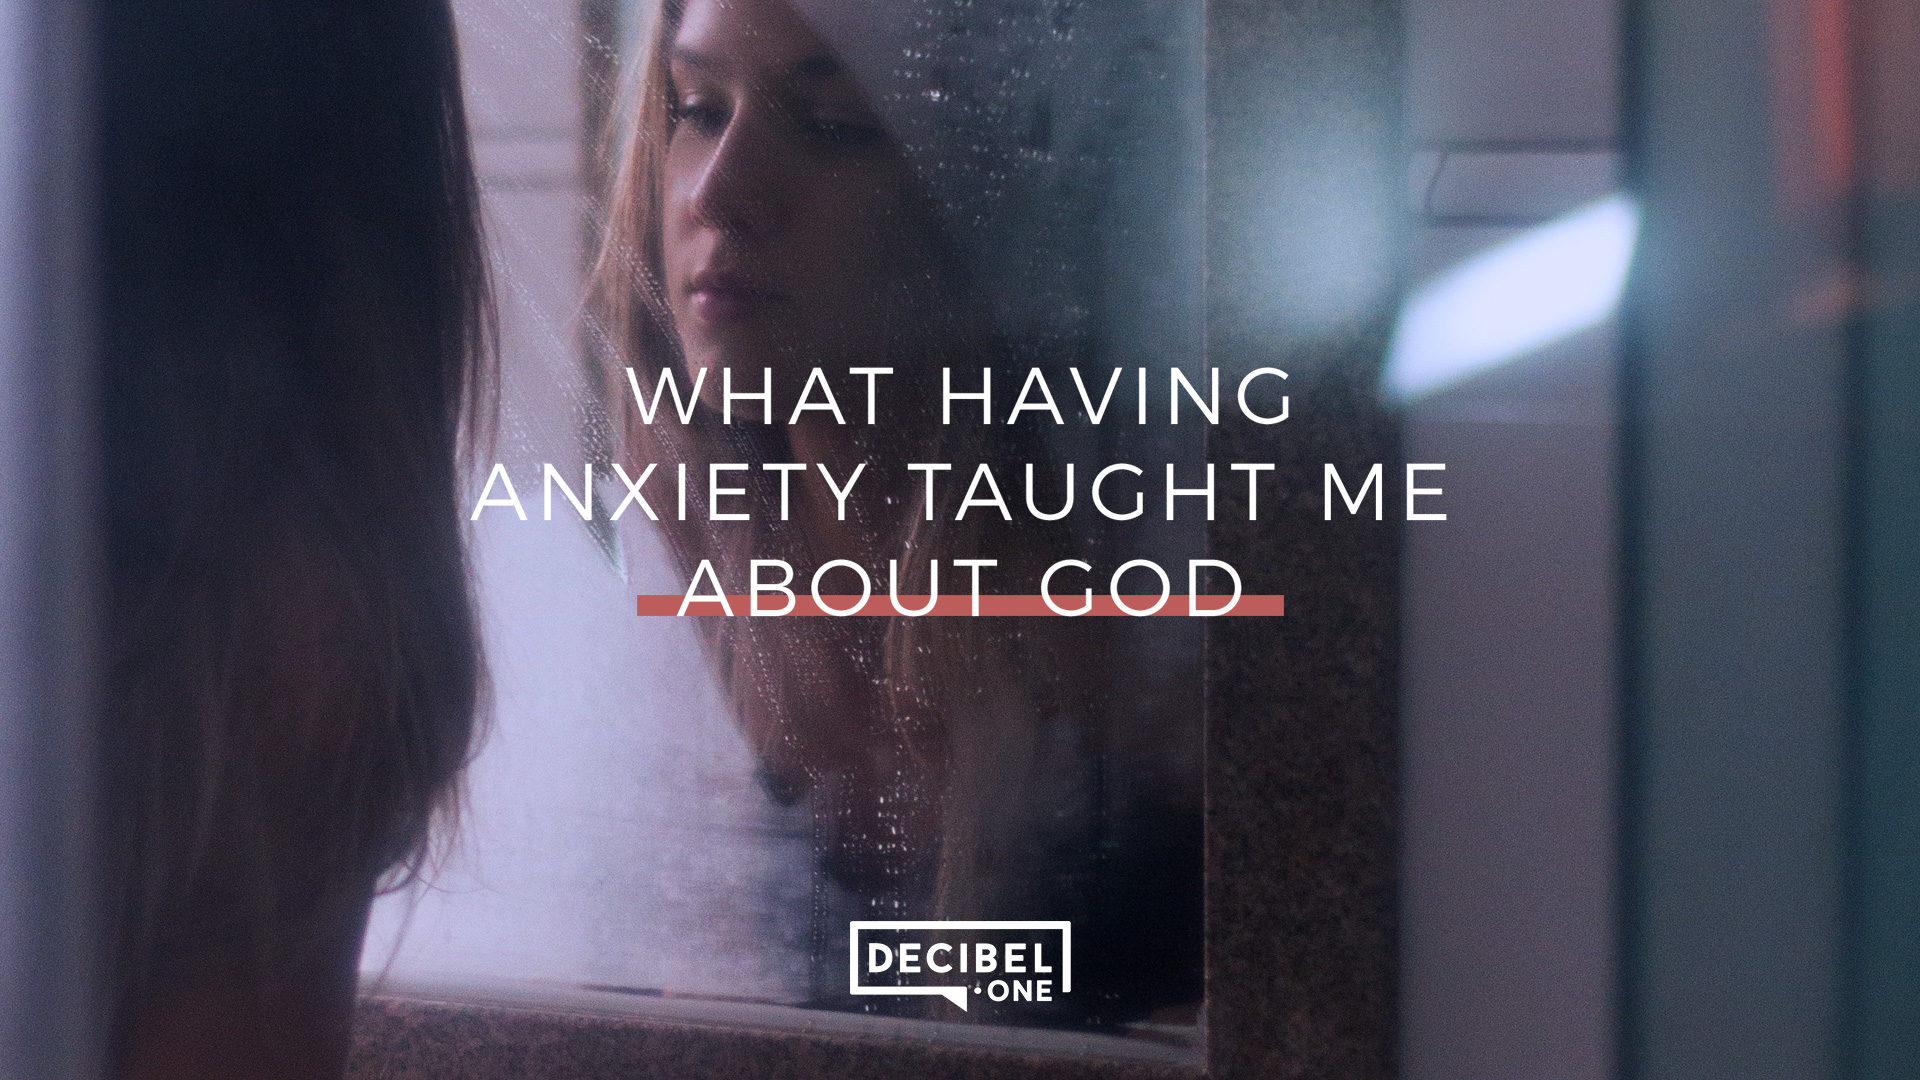 What having anxiety taught me about God